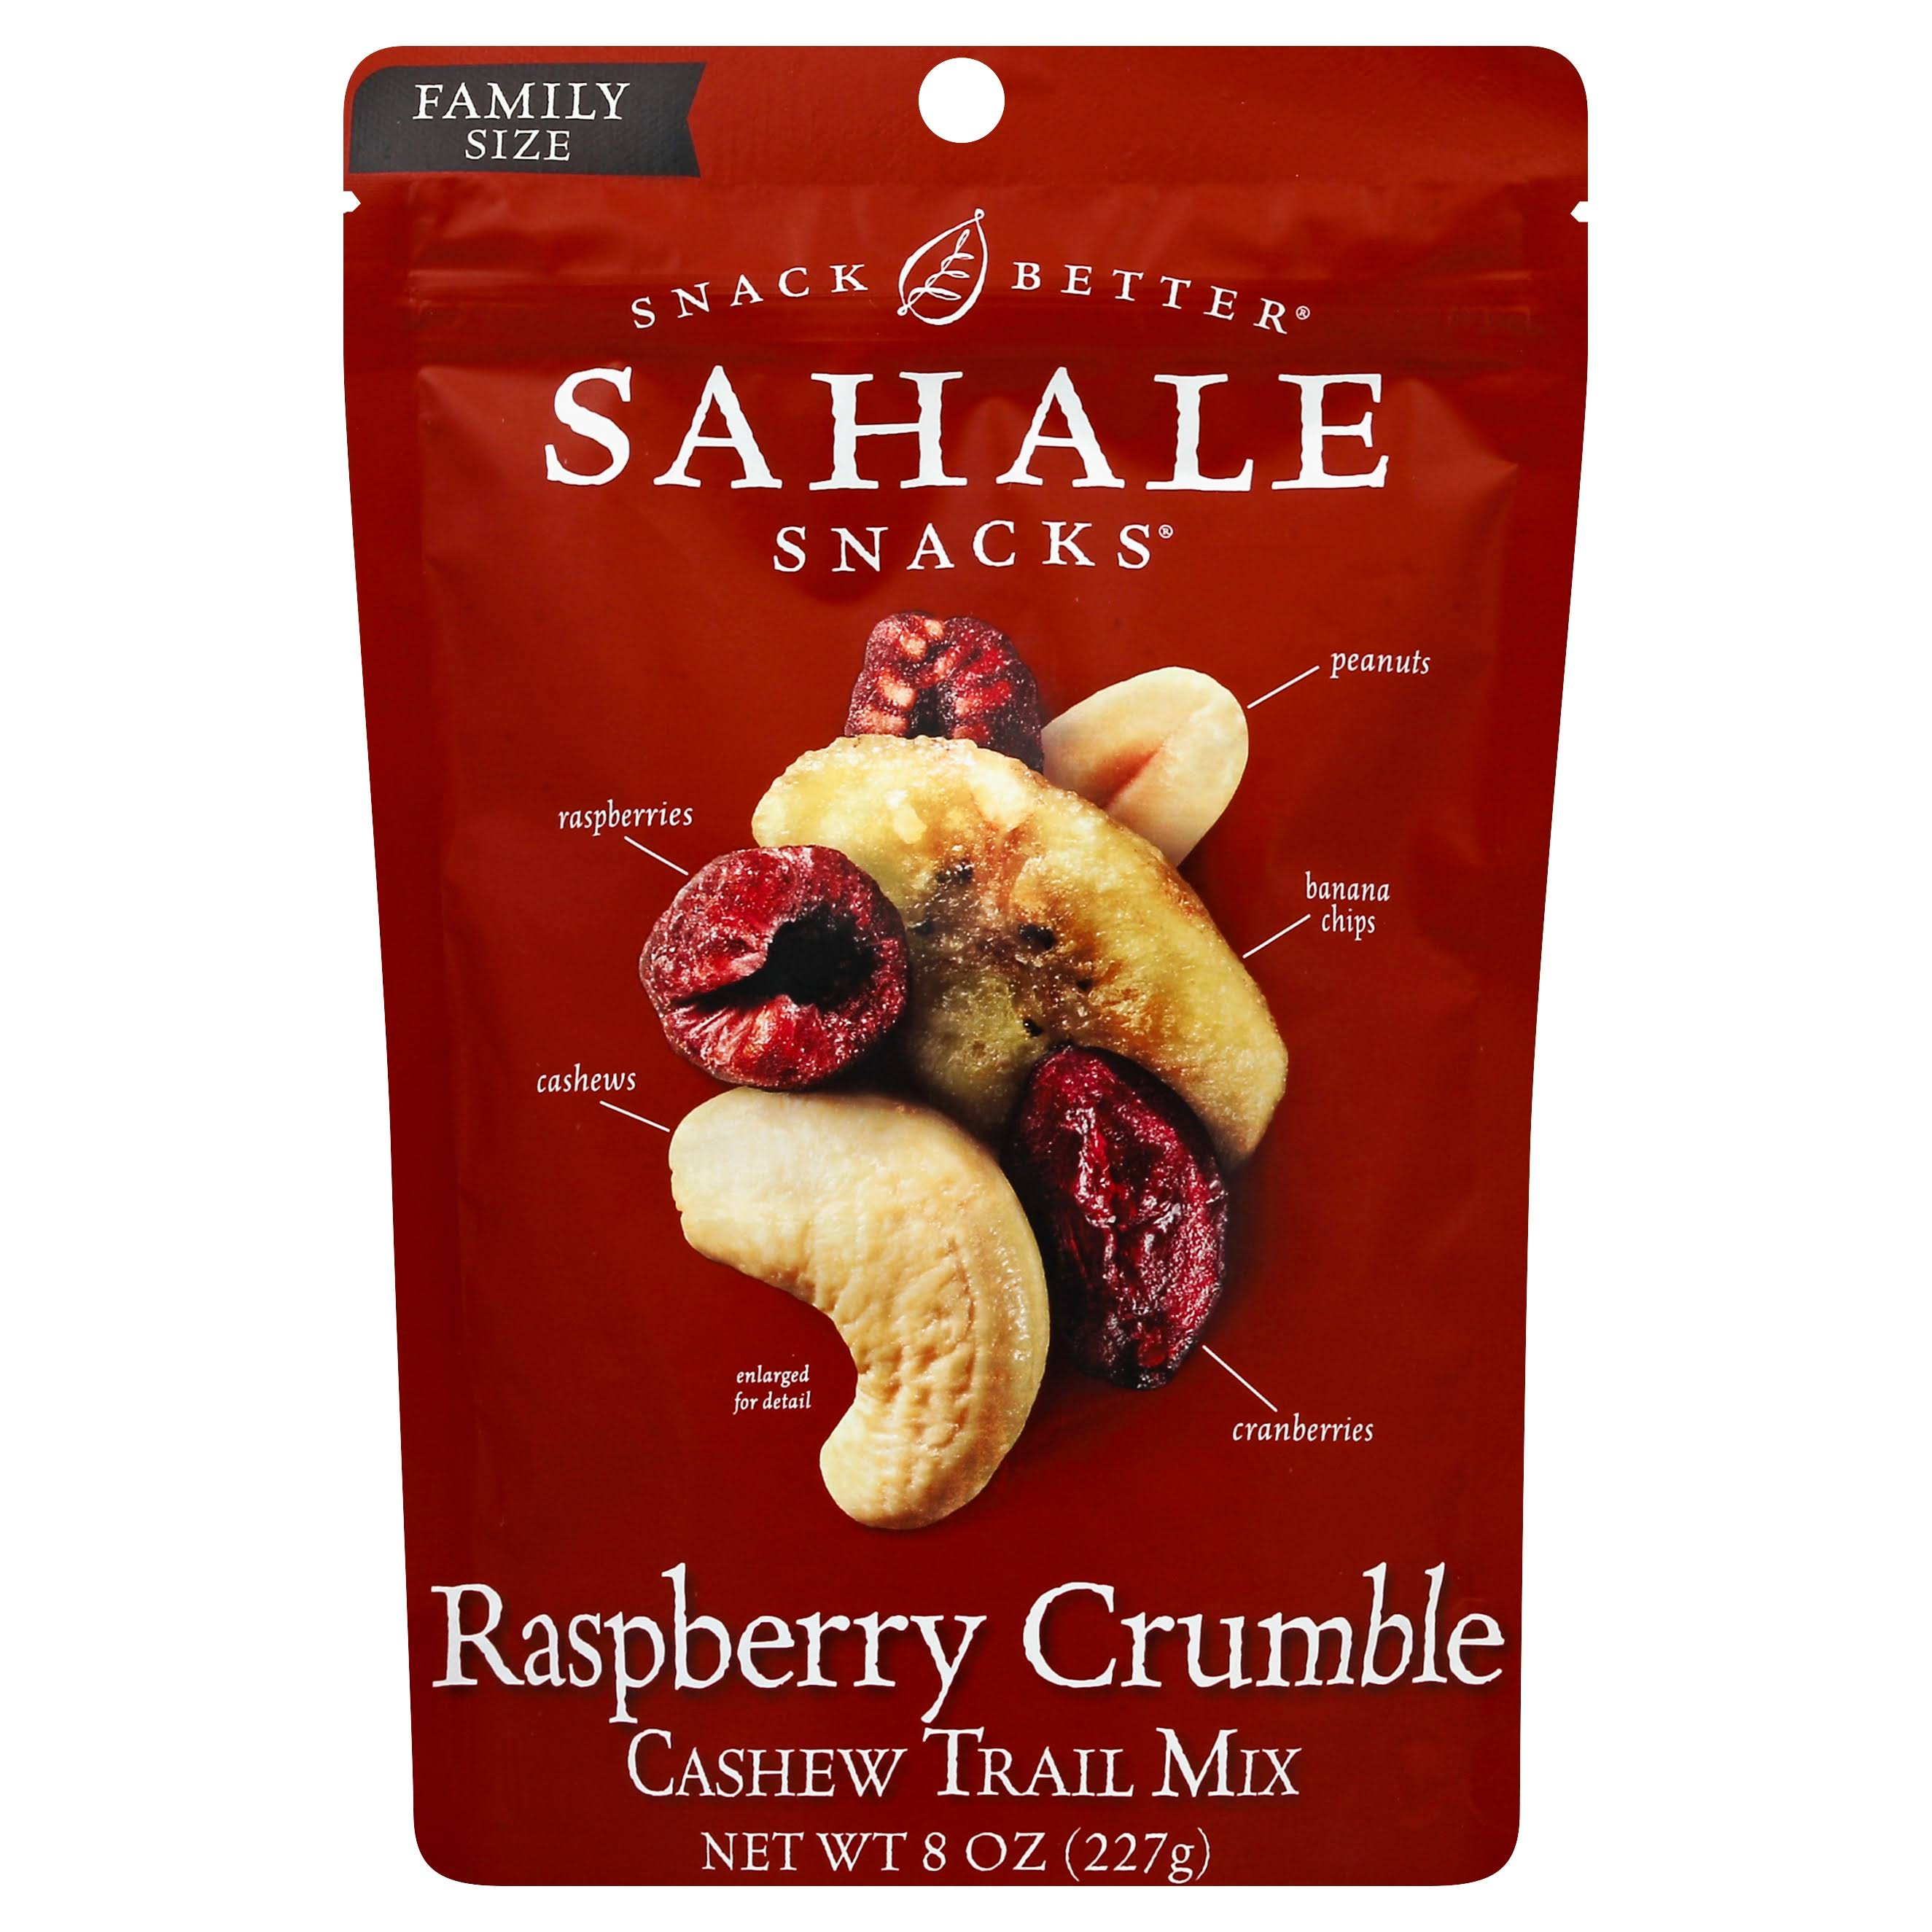 Sahale Snacks Nut Blends Cashew Mix - Raspberry Crumble, 8oz